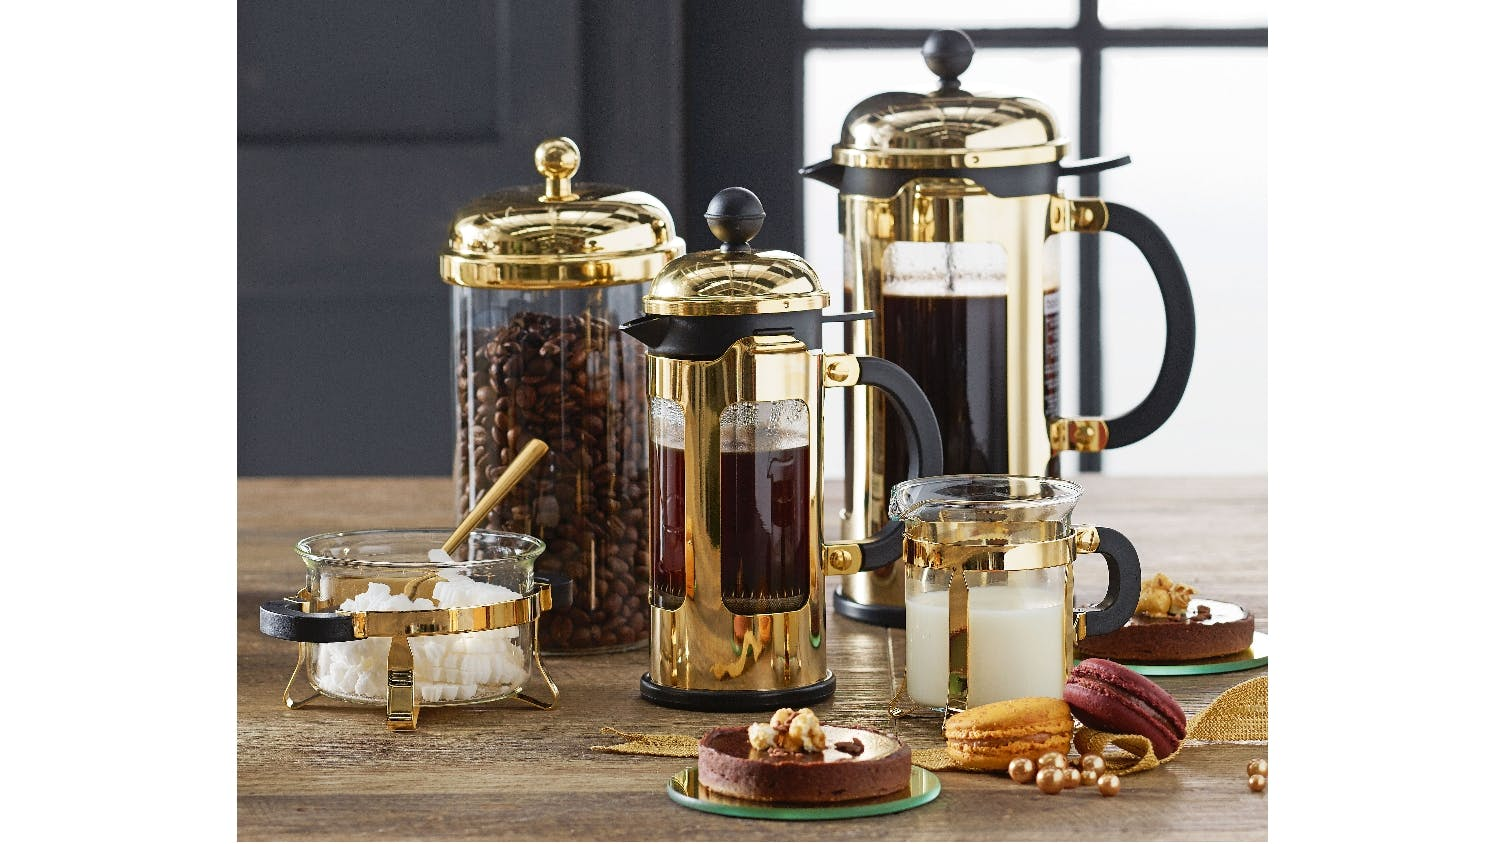 Gold French Press Coffee Maker : Bodum Chambord 3 Cup French Press Coffee Maker - Gold Domayne